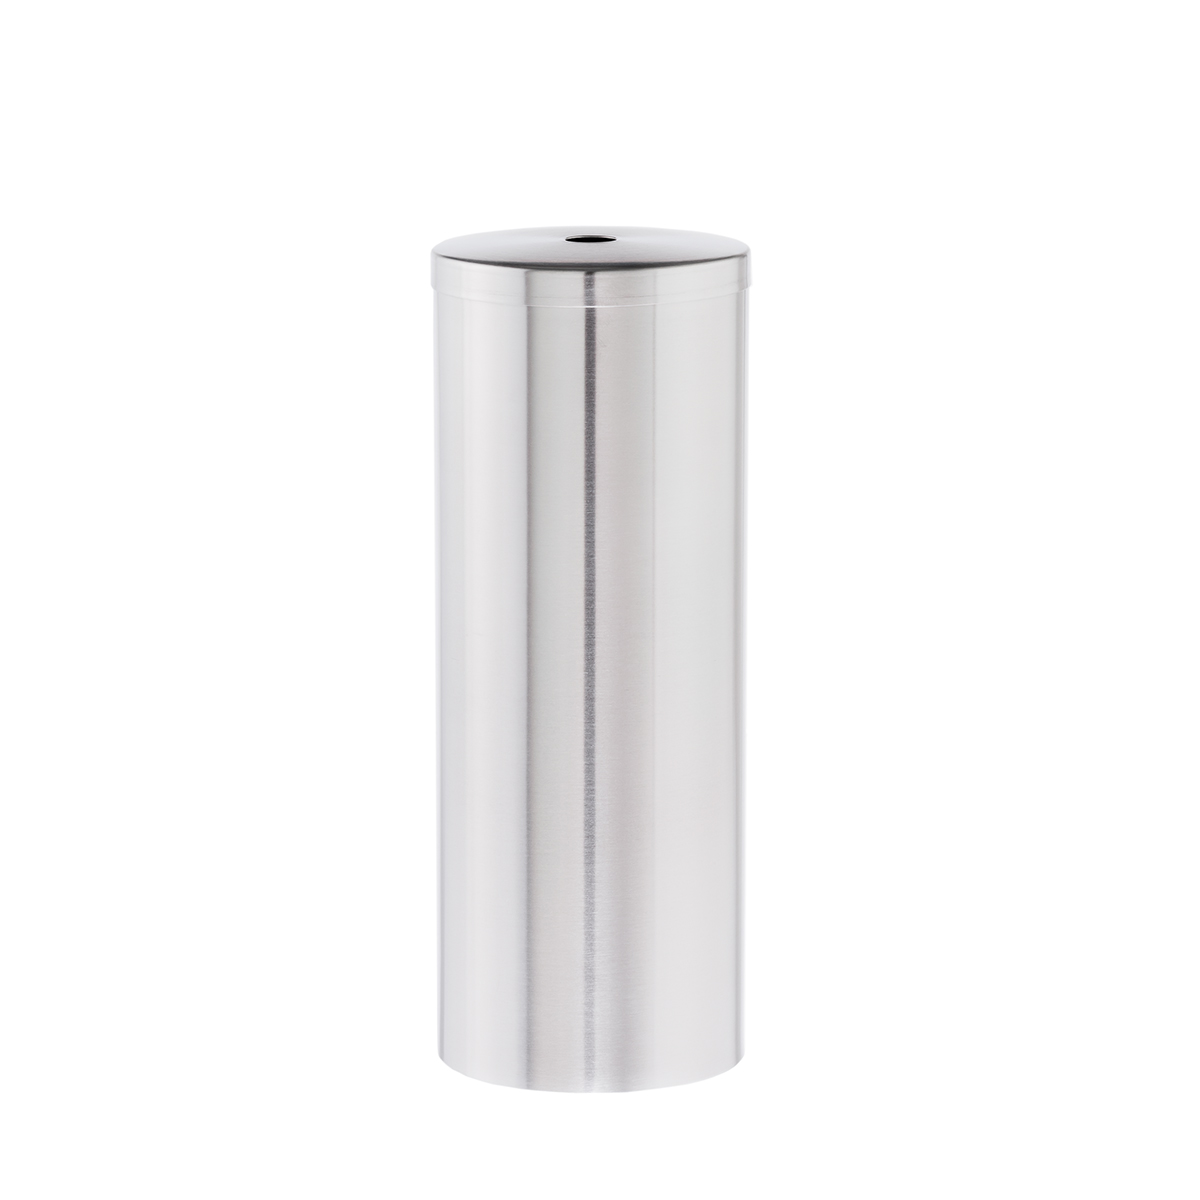 Delightful Forma Bath Tissue Canister